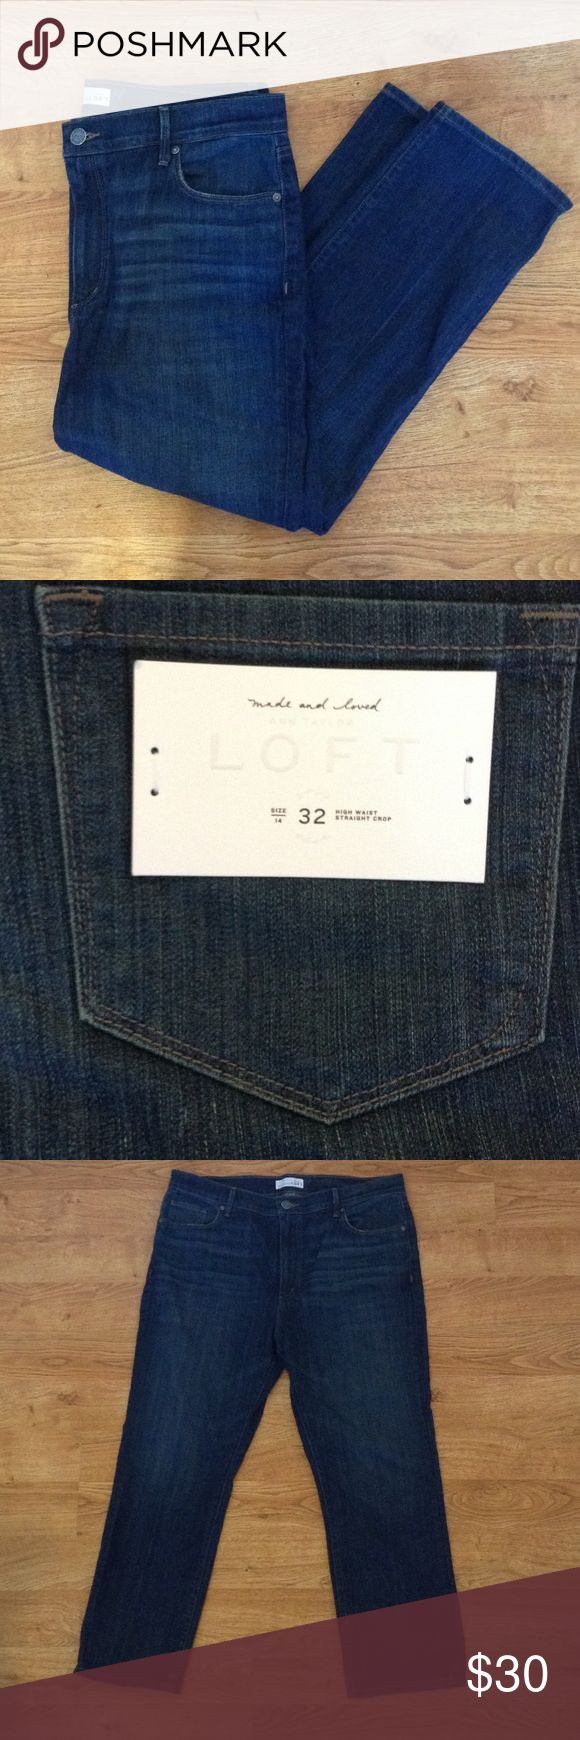 NWT Loft High Waist Straight Crop size 14 NWT high waisted dark wash straight crop jeans. Labeled size 32/14. NO defects. Great staple for any wardrobe. LOFT Jeans Ankle & Cropped